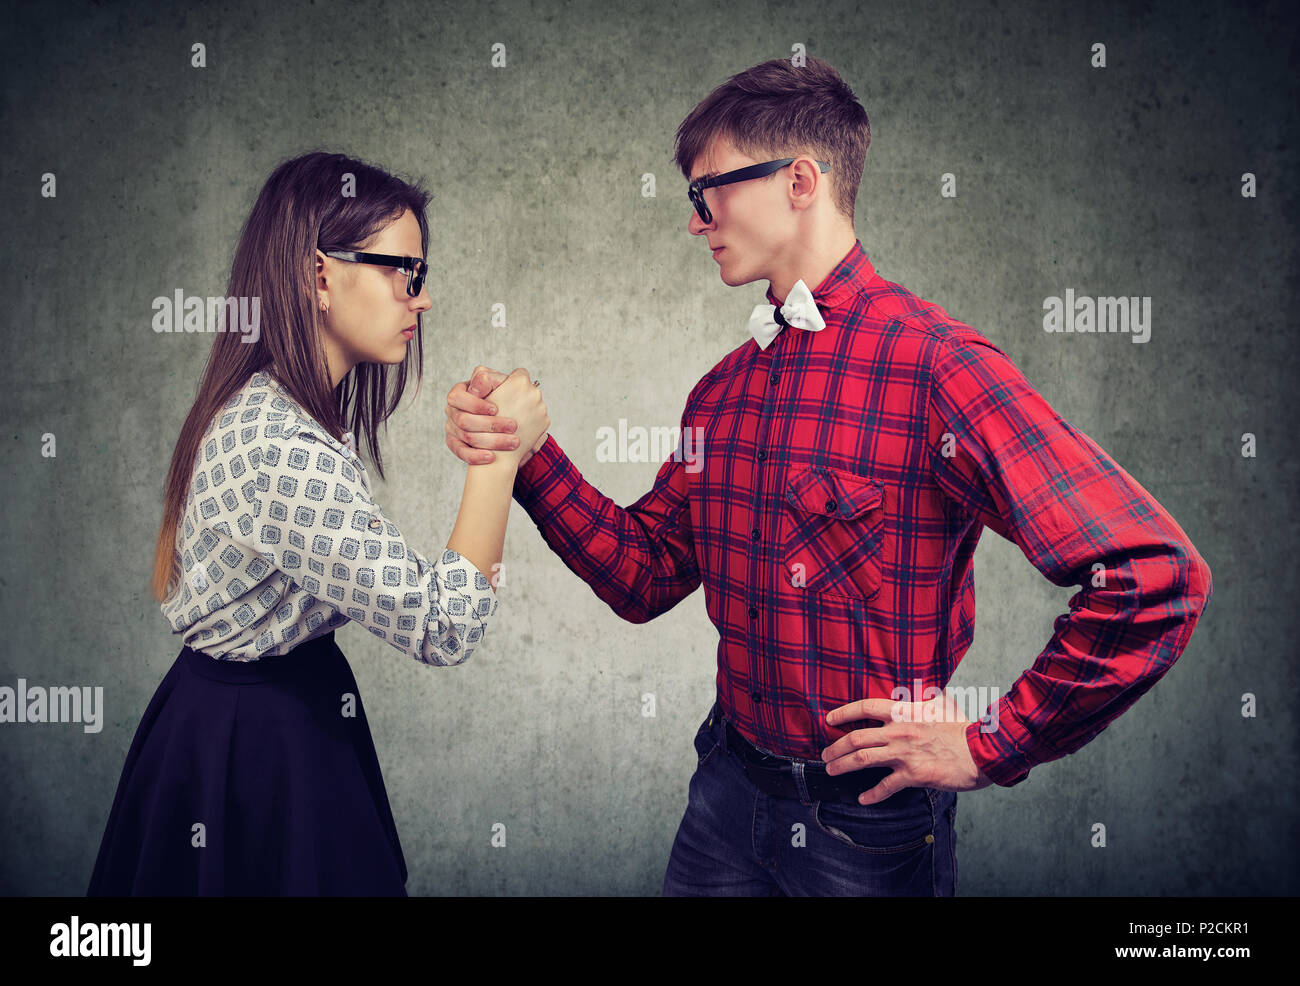 Young man and woman having competition in arm wrestling looking at each other in domination. - Stock Image